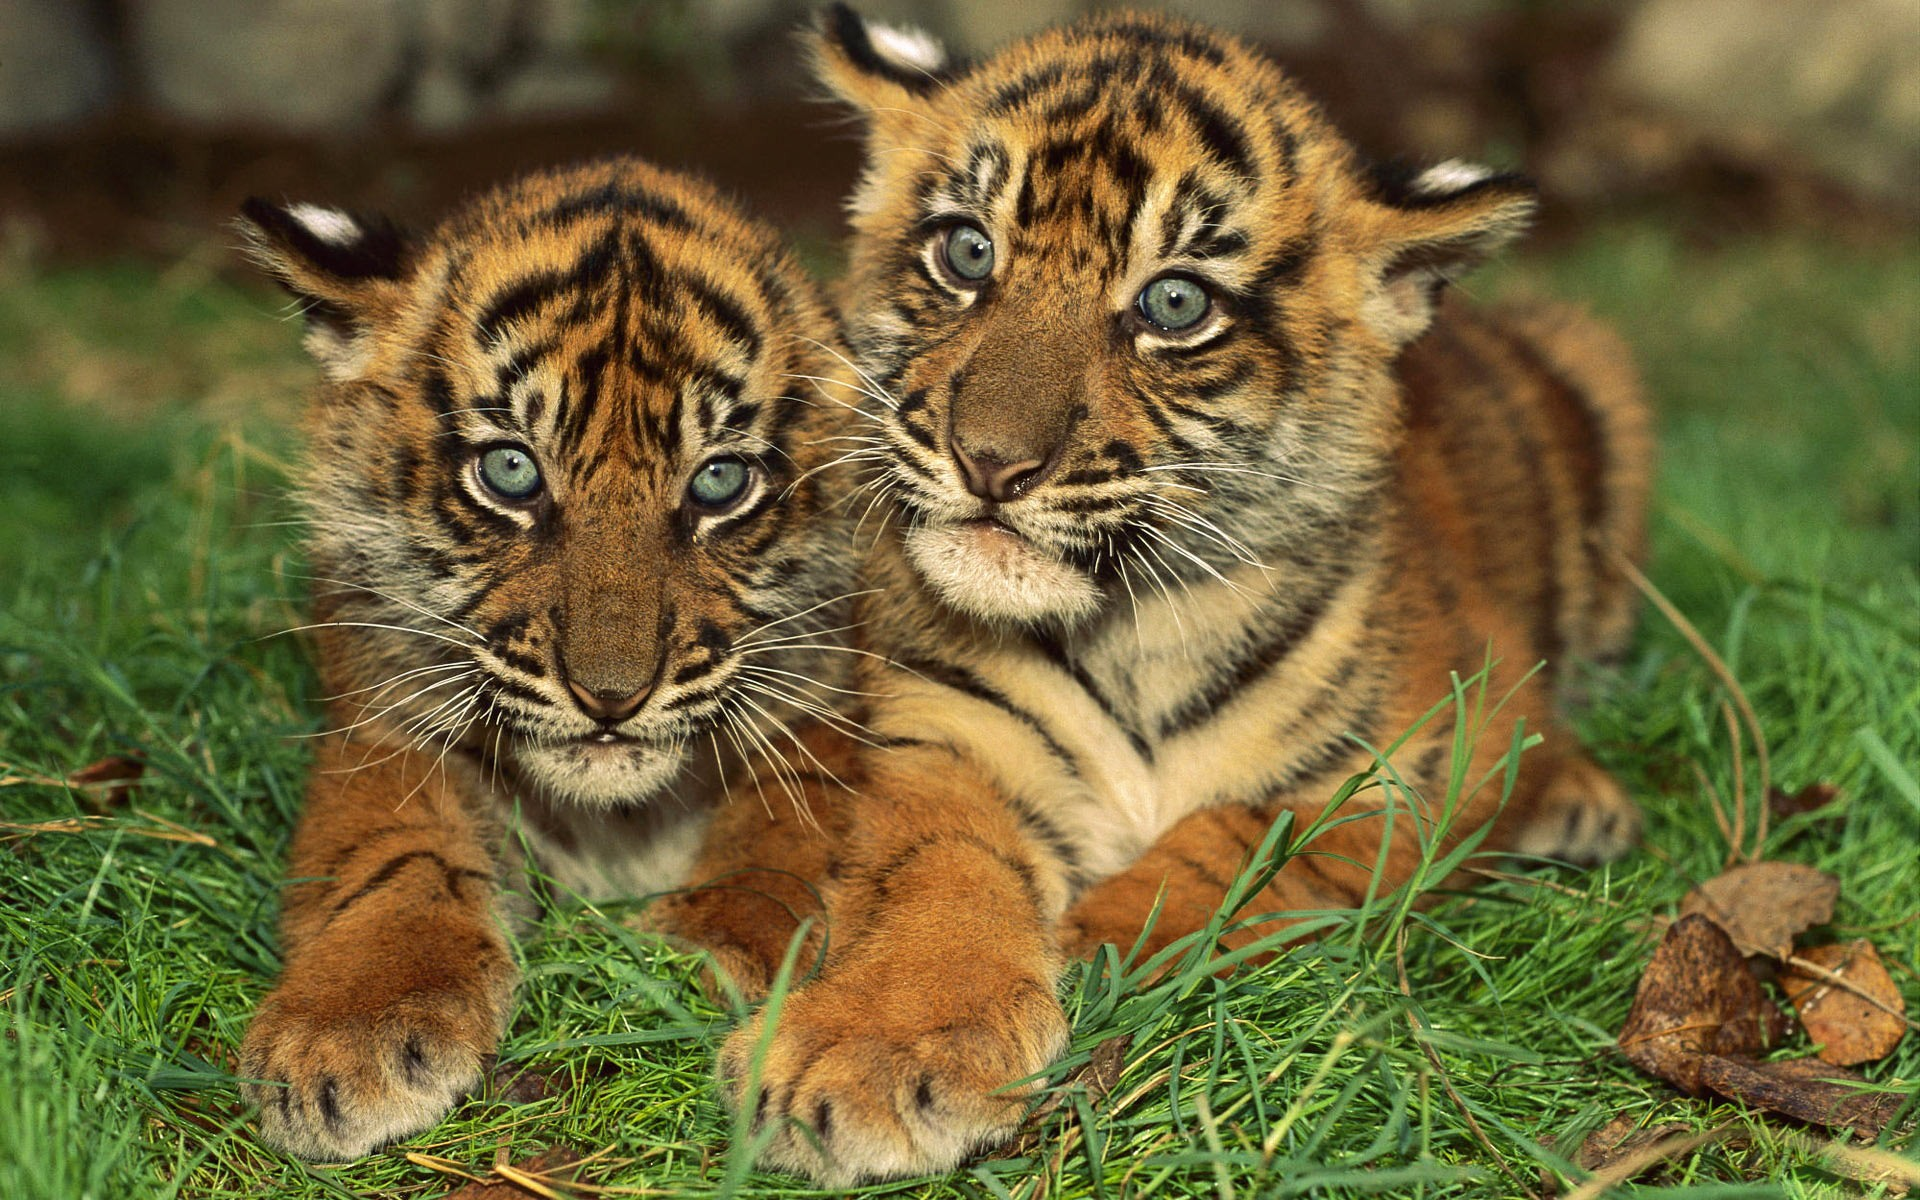 Tiger Cubs desktop wallpaper 1920x1200